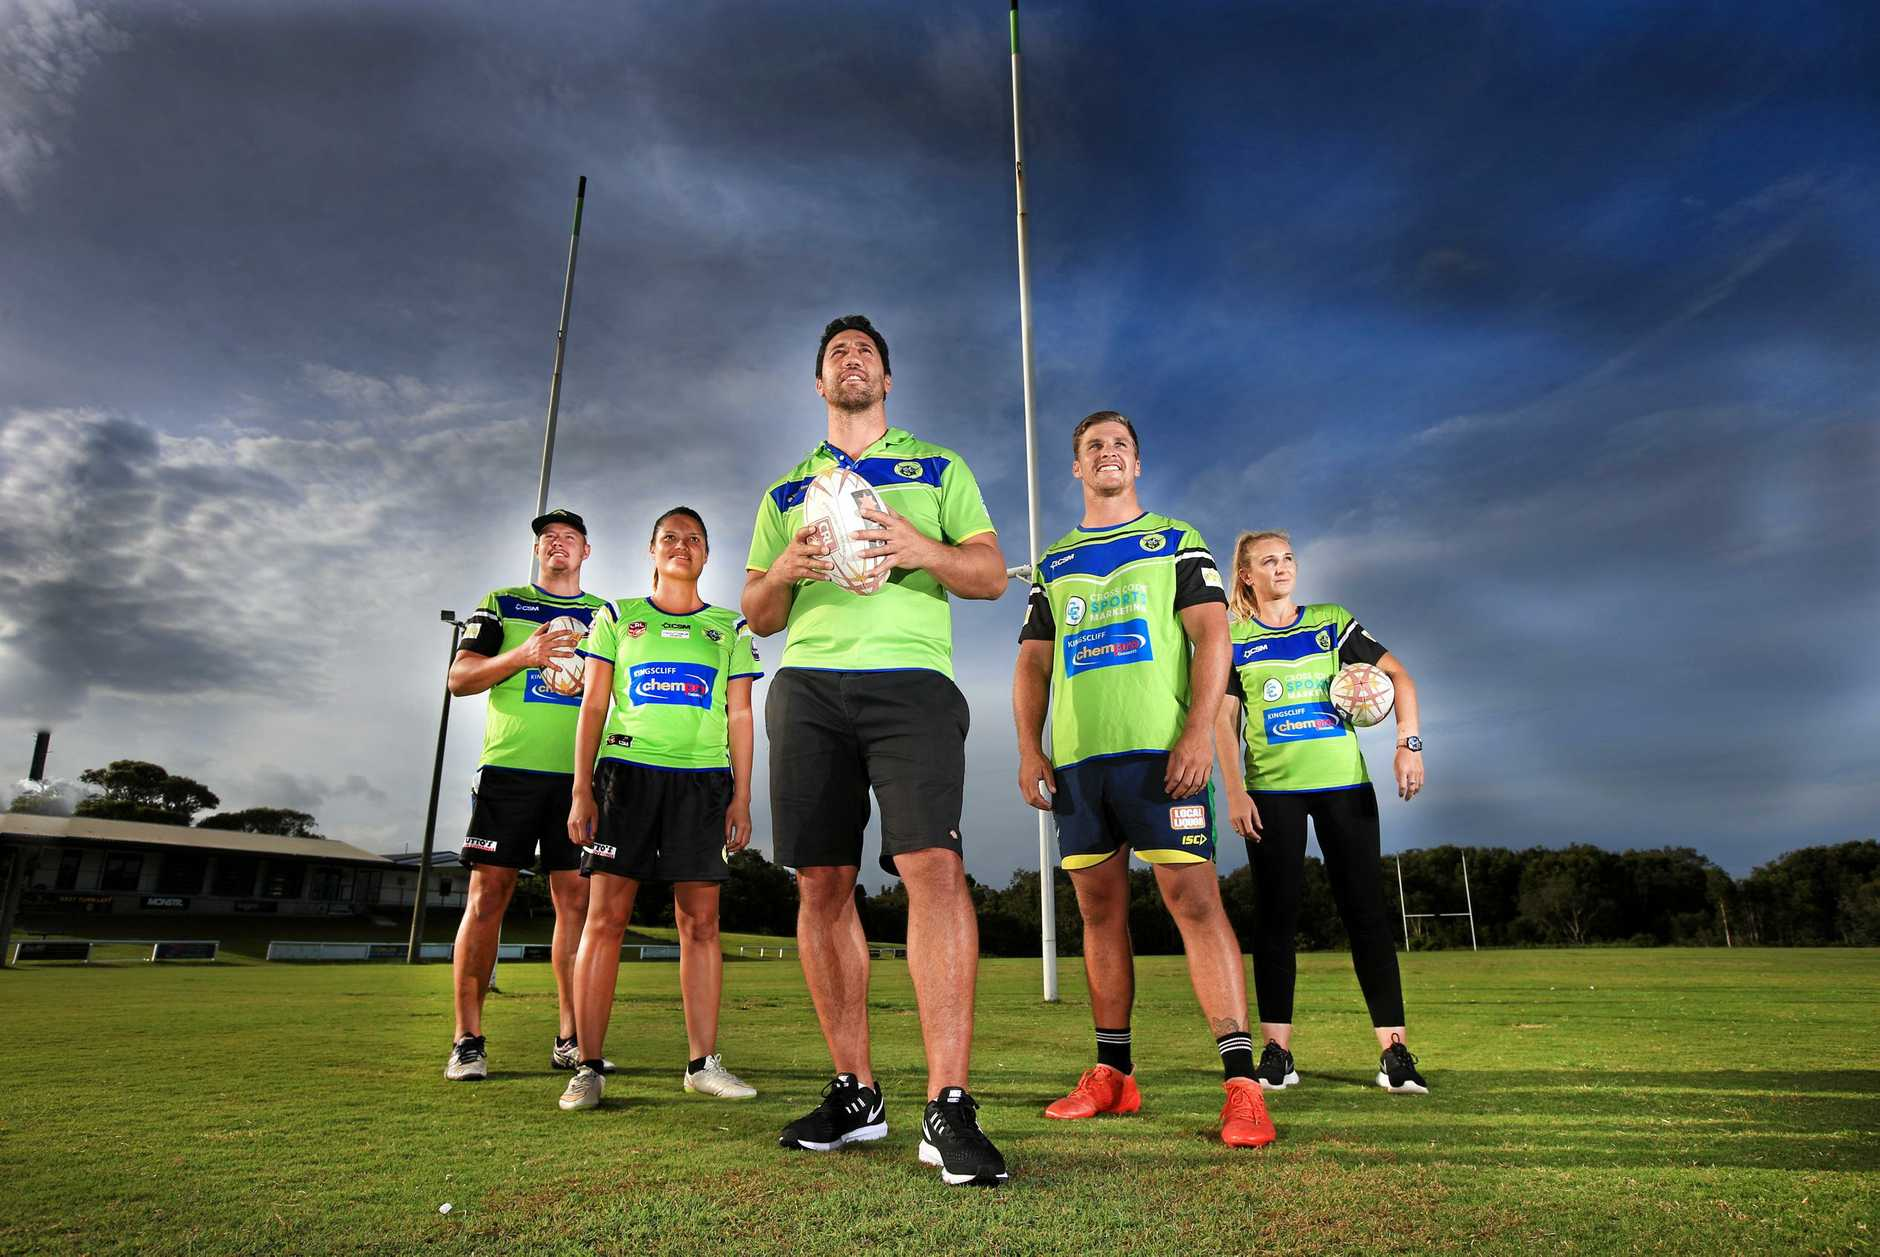 Tweed Coast Raiders new coach former NRL super star Brent Kite starts pre season training with some of his players : Guy Lanslon, Bridey McNeven, Brent Kite (Coach) Jamie Donaldson and Kristin Milloy